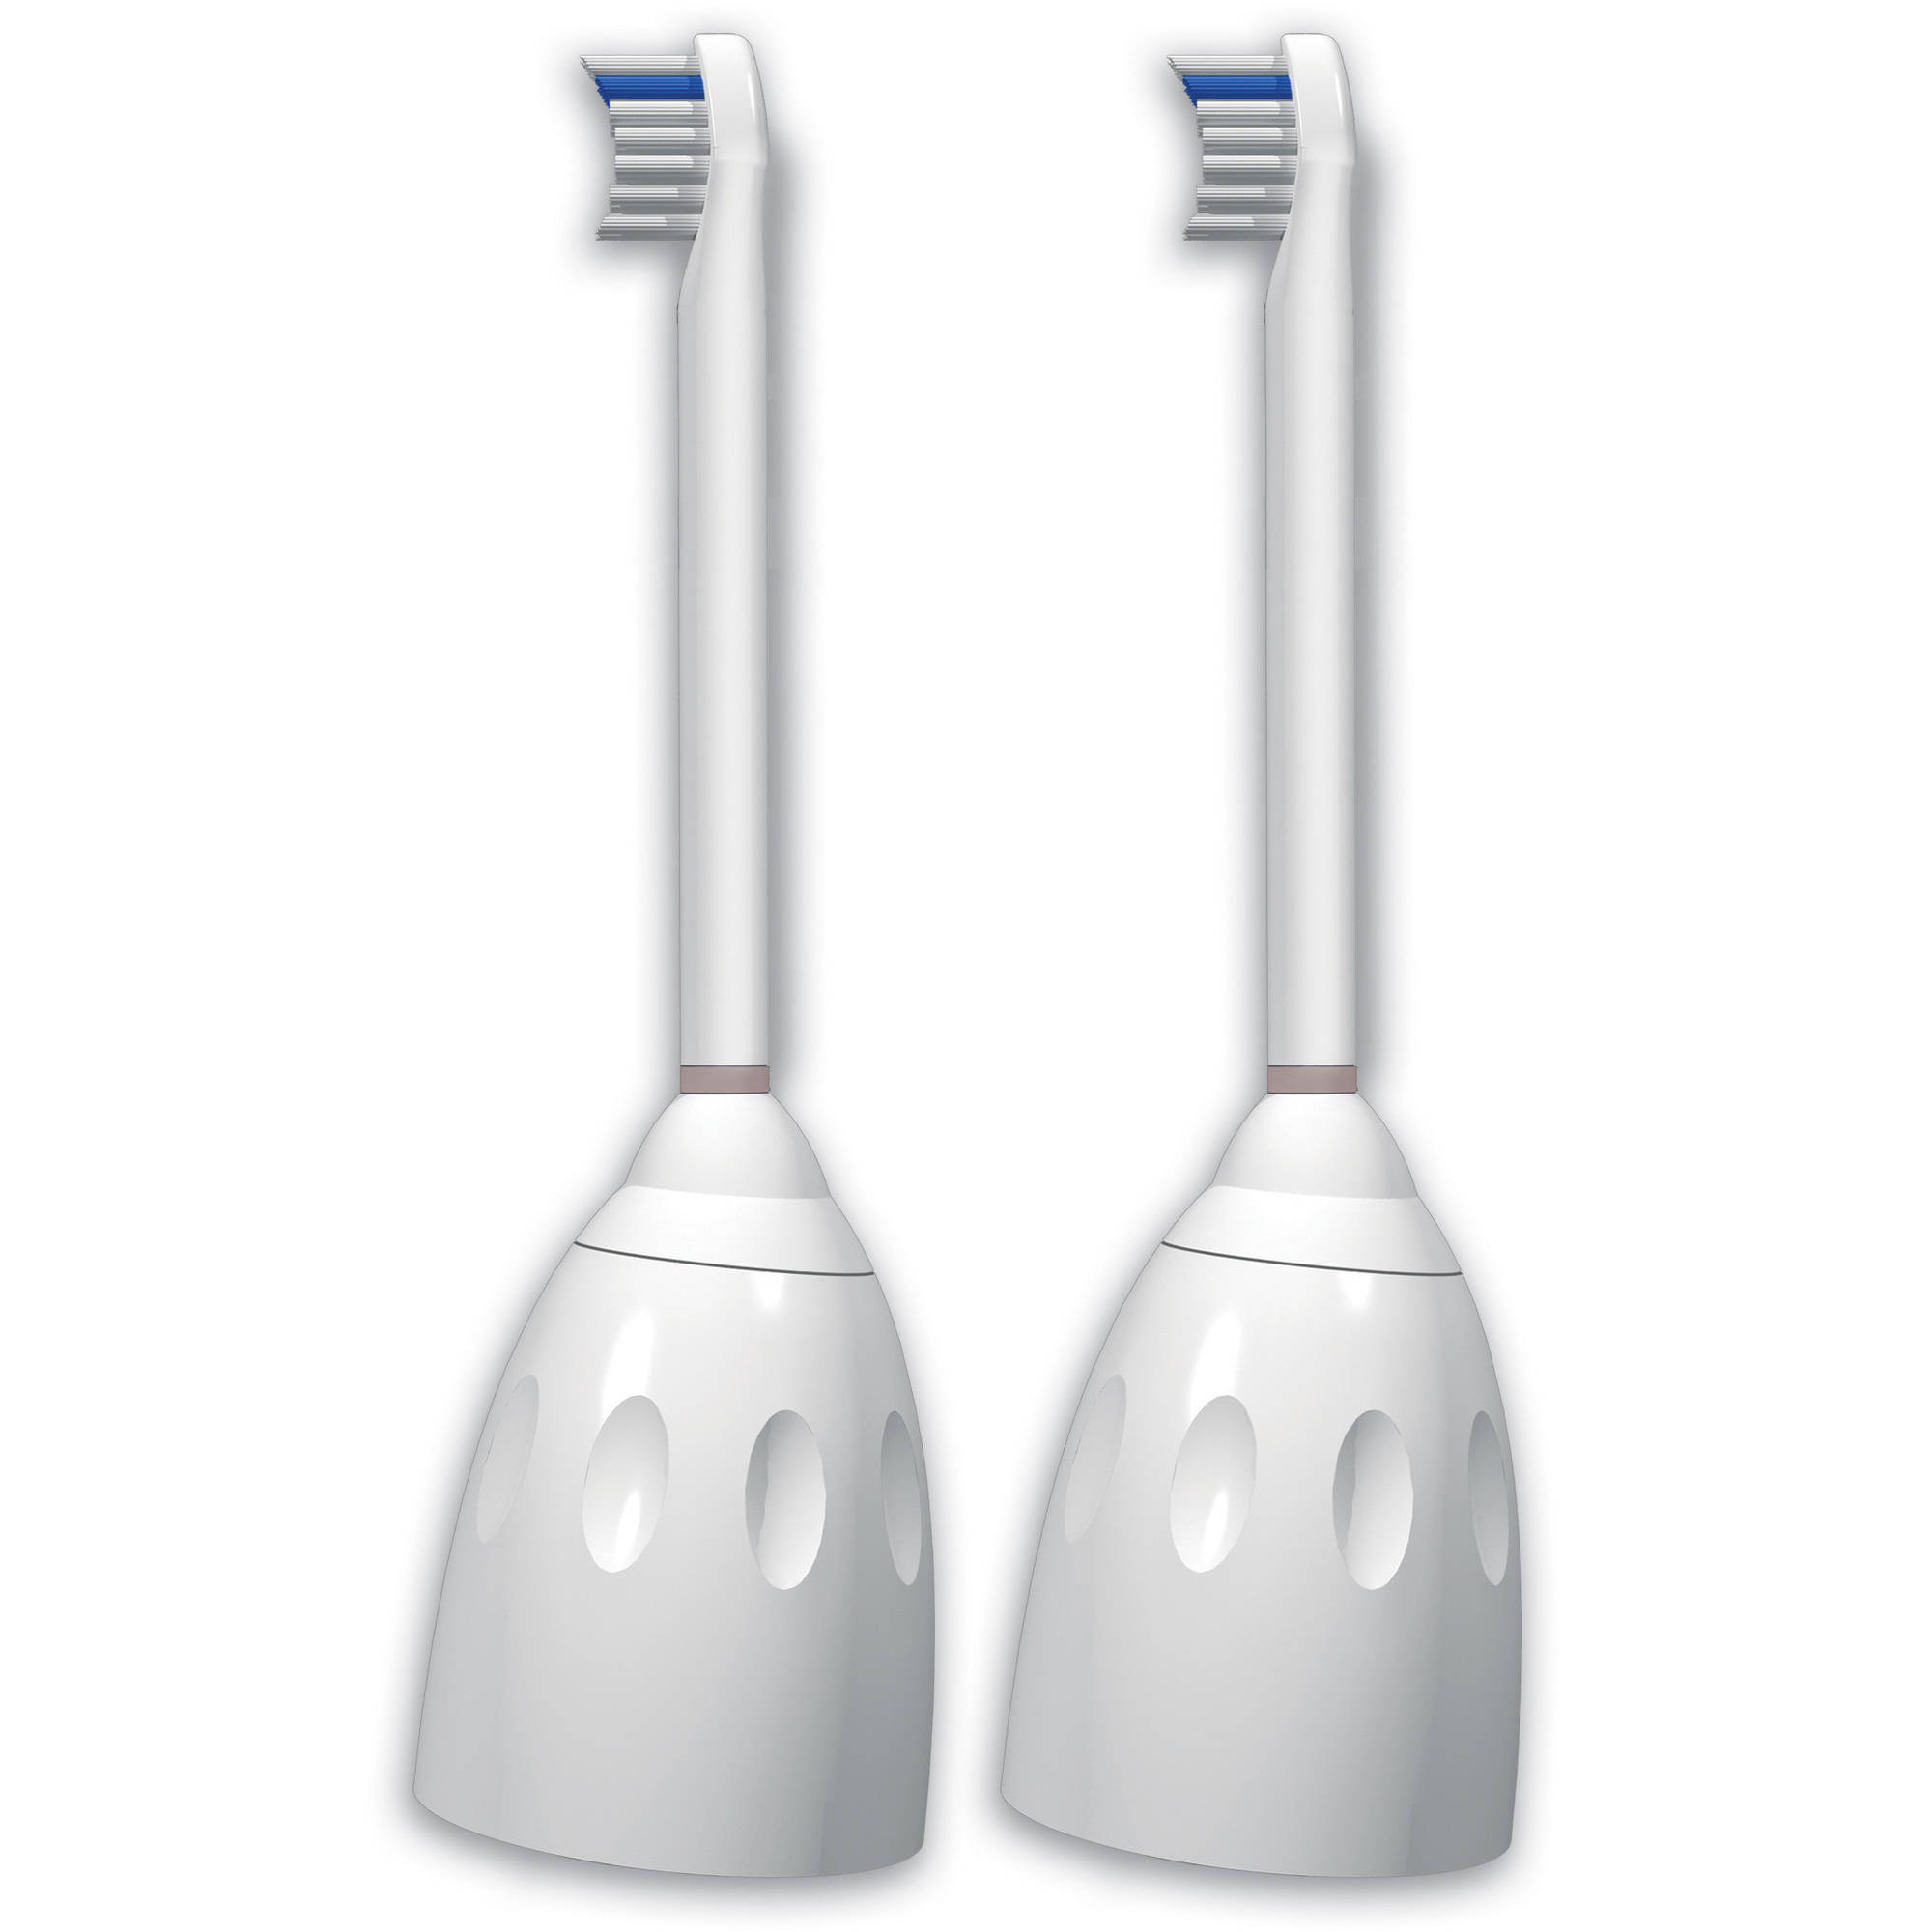 Philips Sonicare e-Series Standard Replacement Brush Heads, 2 count